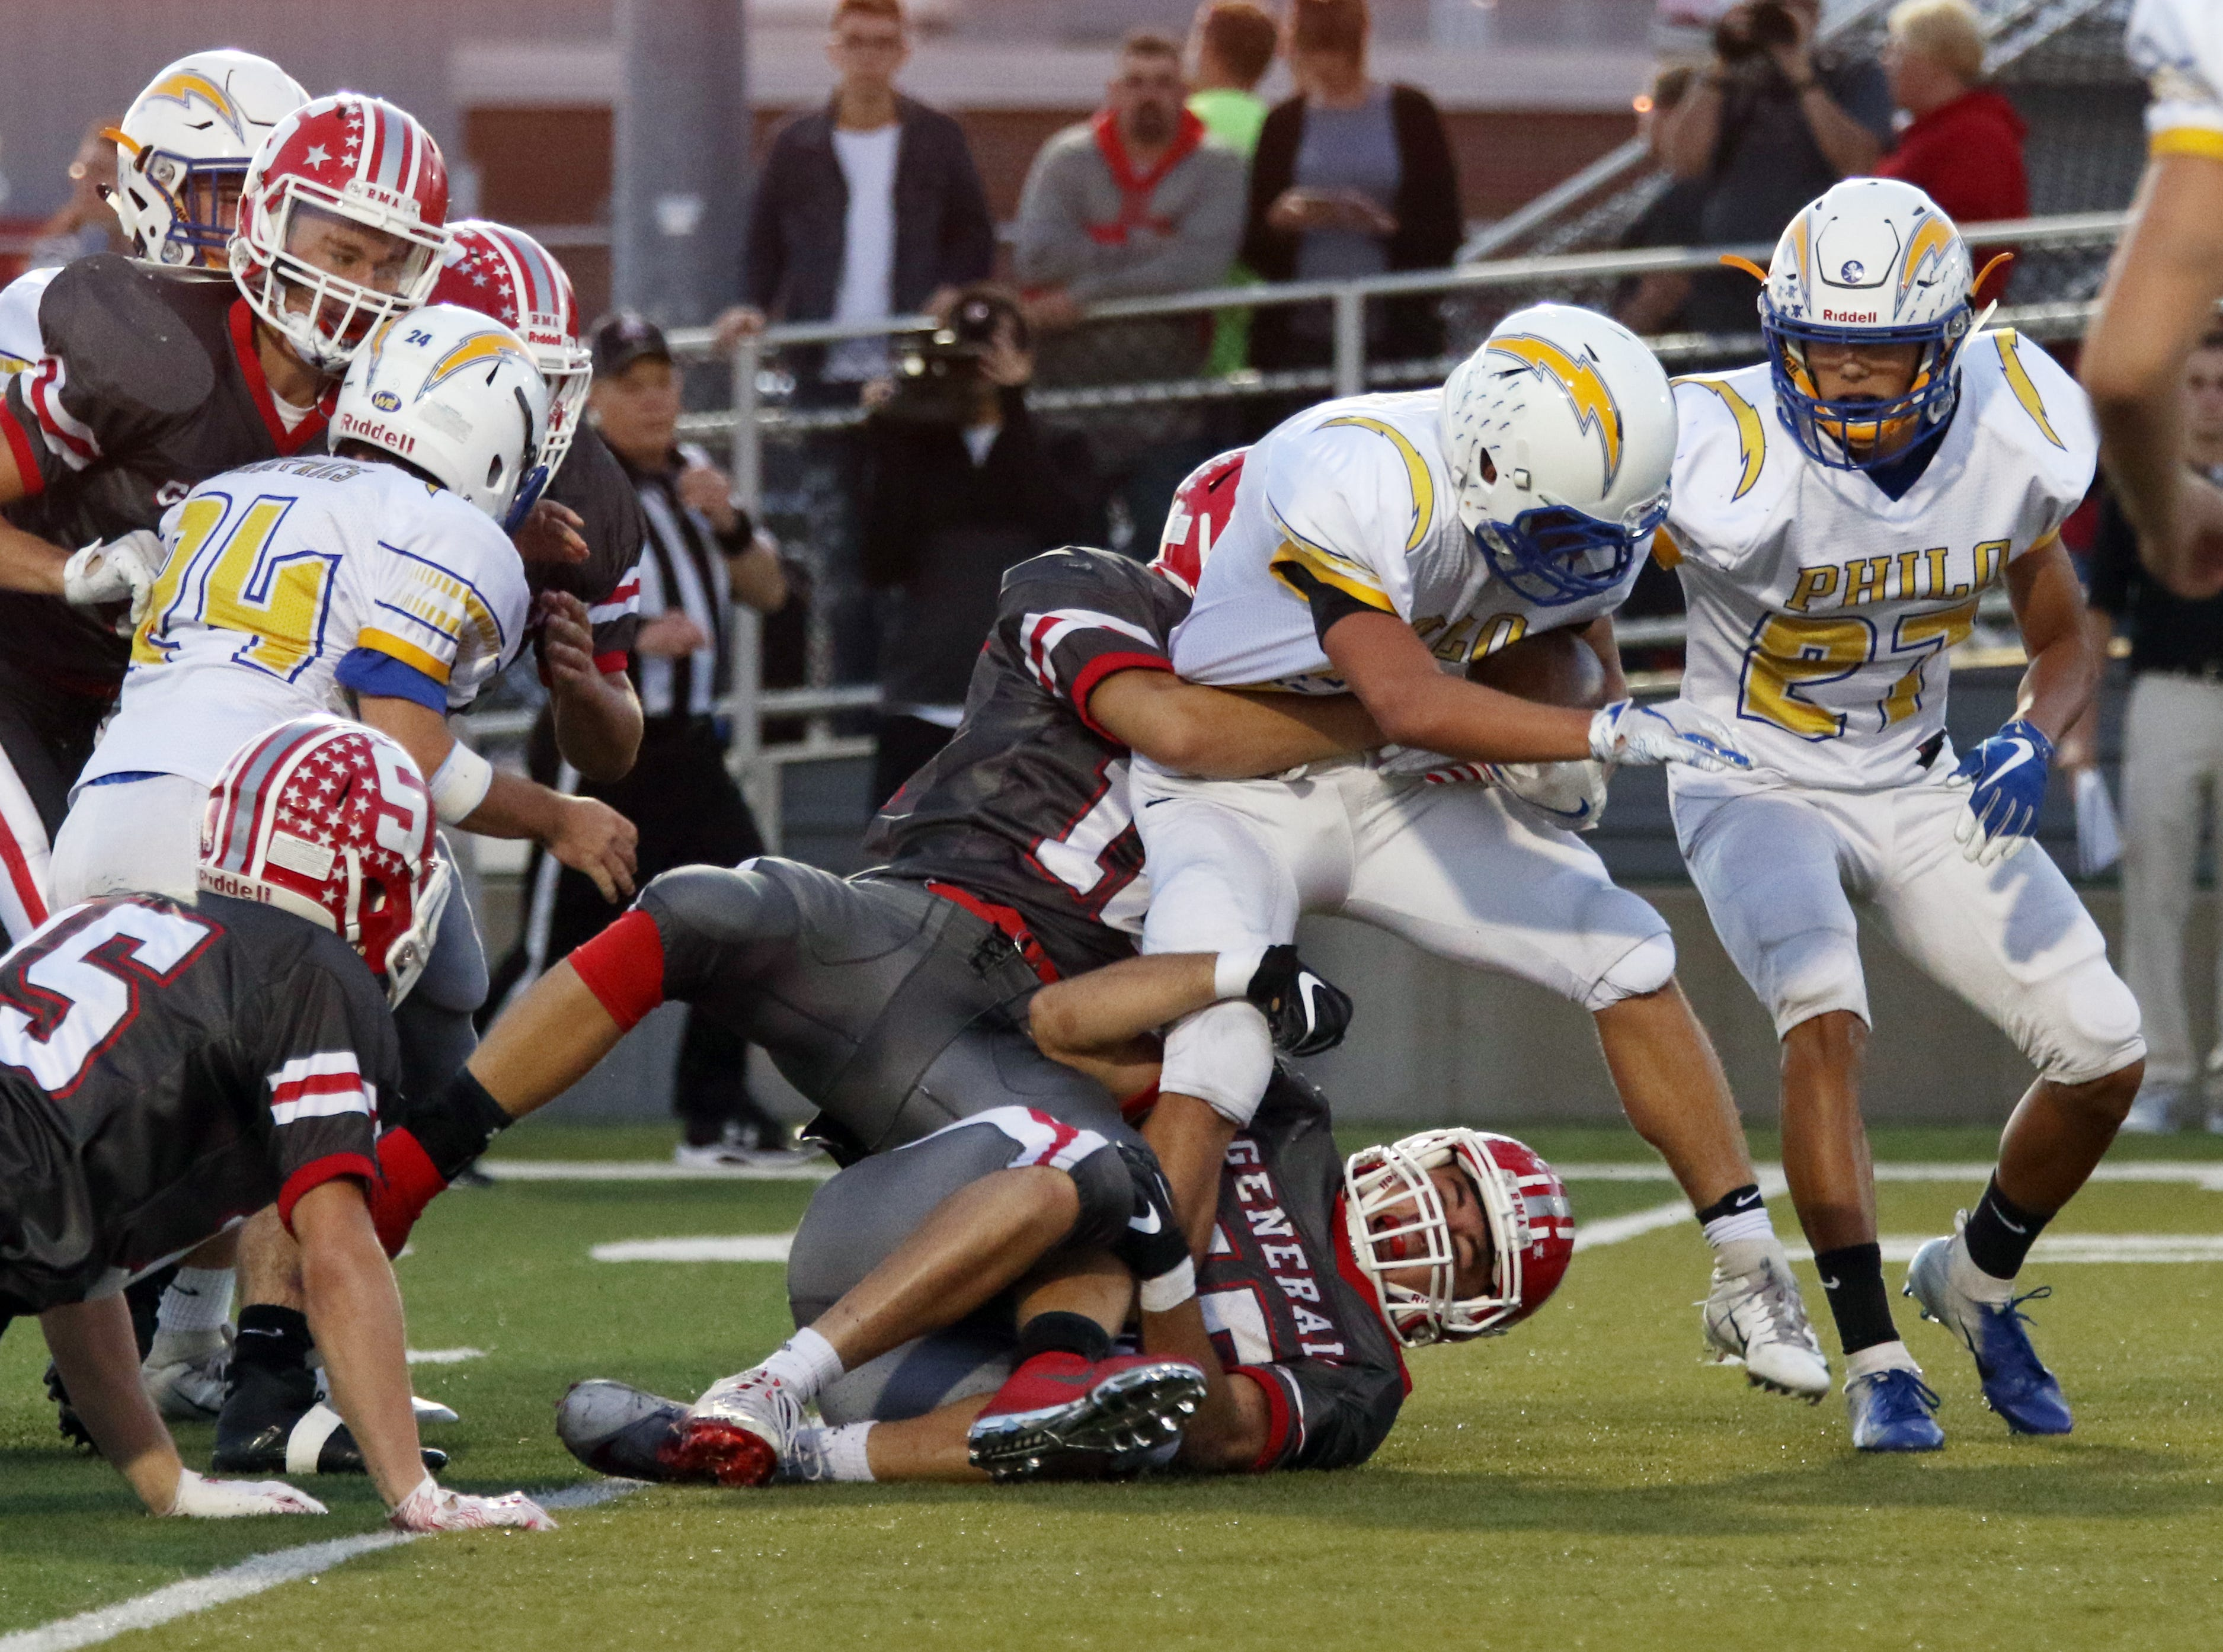 A pair of Generals defenders tackle a Philo ball carrier.